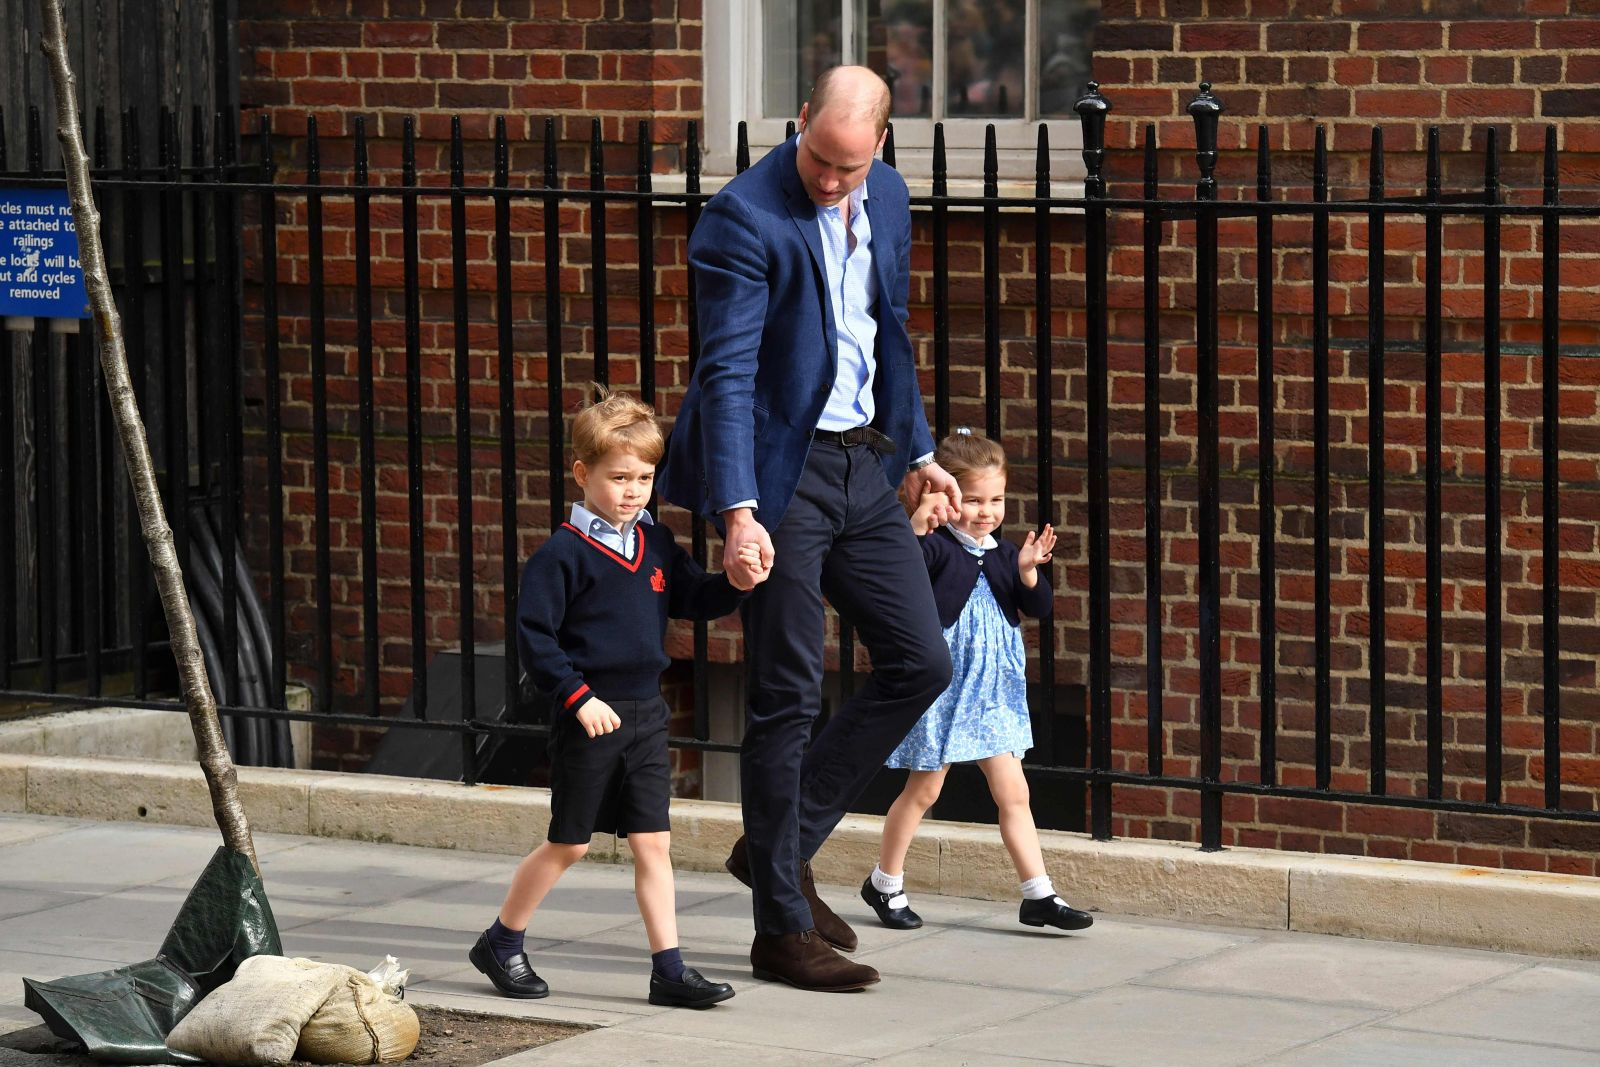 Back to school, principe george, regreso escuela principe george, kate middleton, principe william, hijo principe william y kate middleton